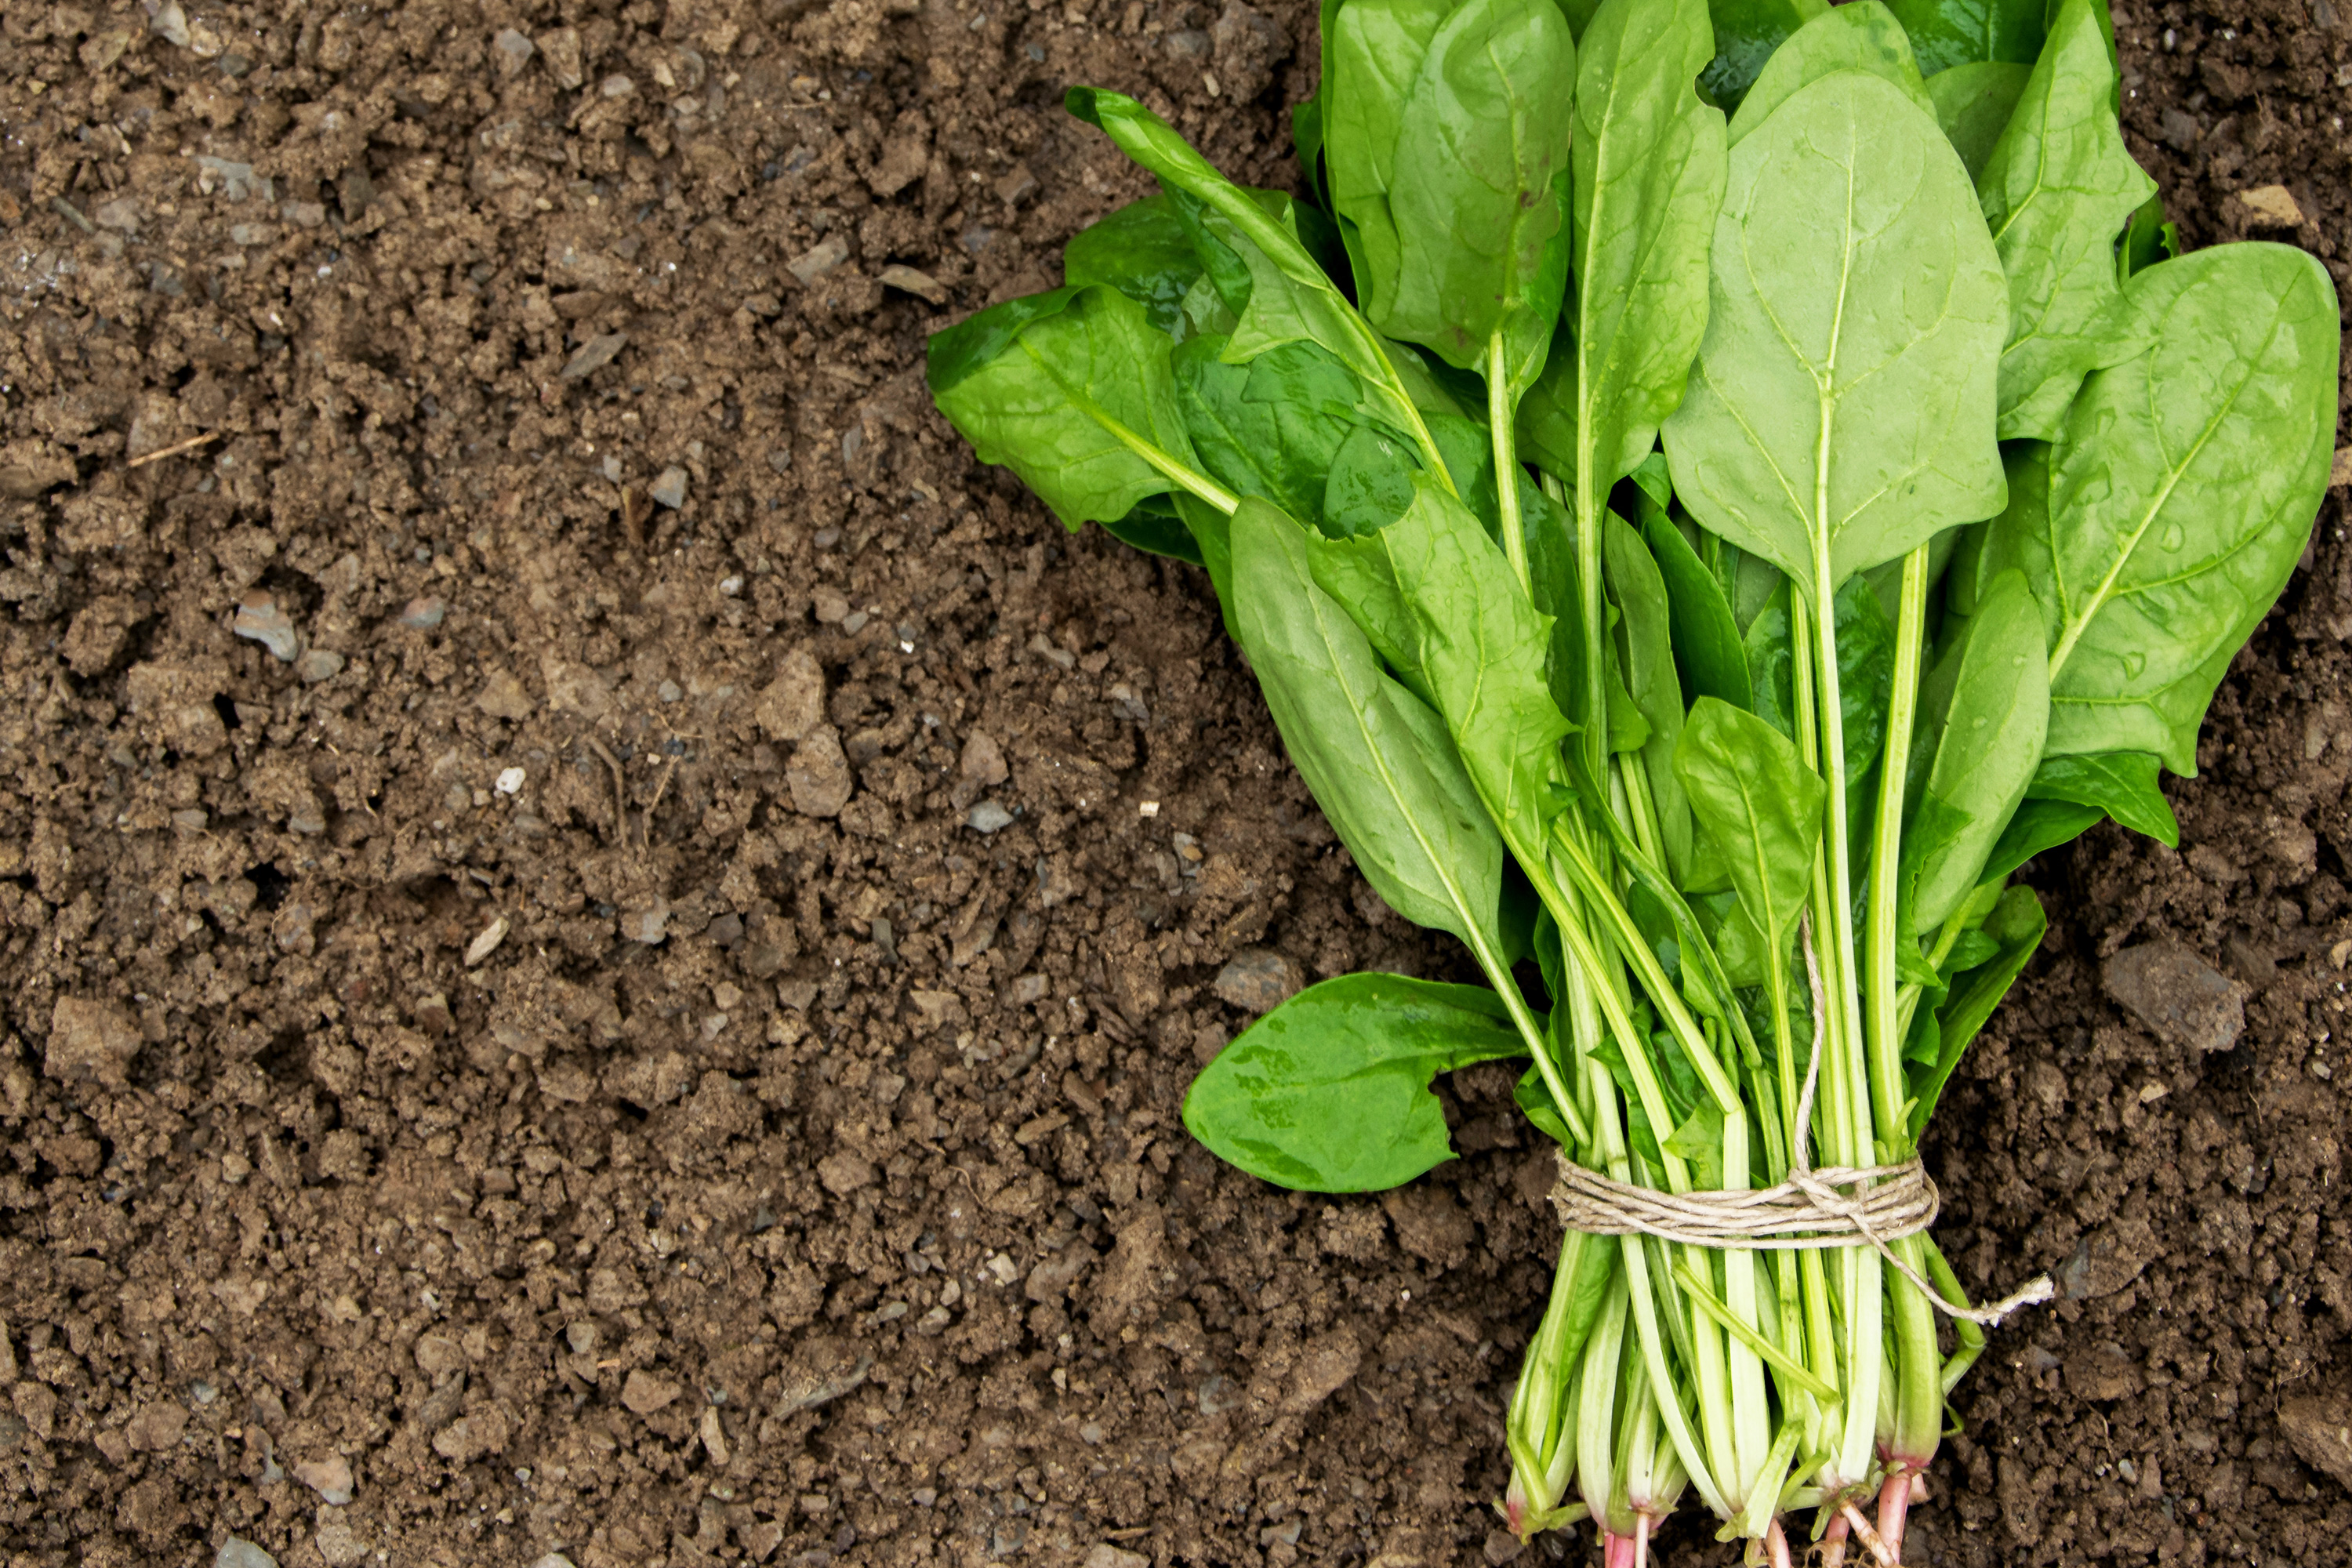 Dole Recalls Baby Spinach Amid Salmonella Outbreak in These 10 States